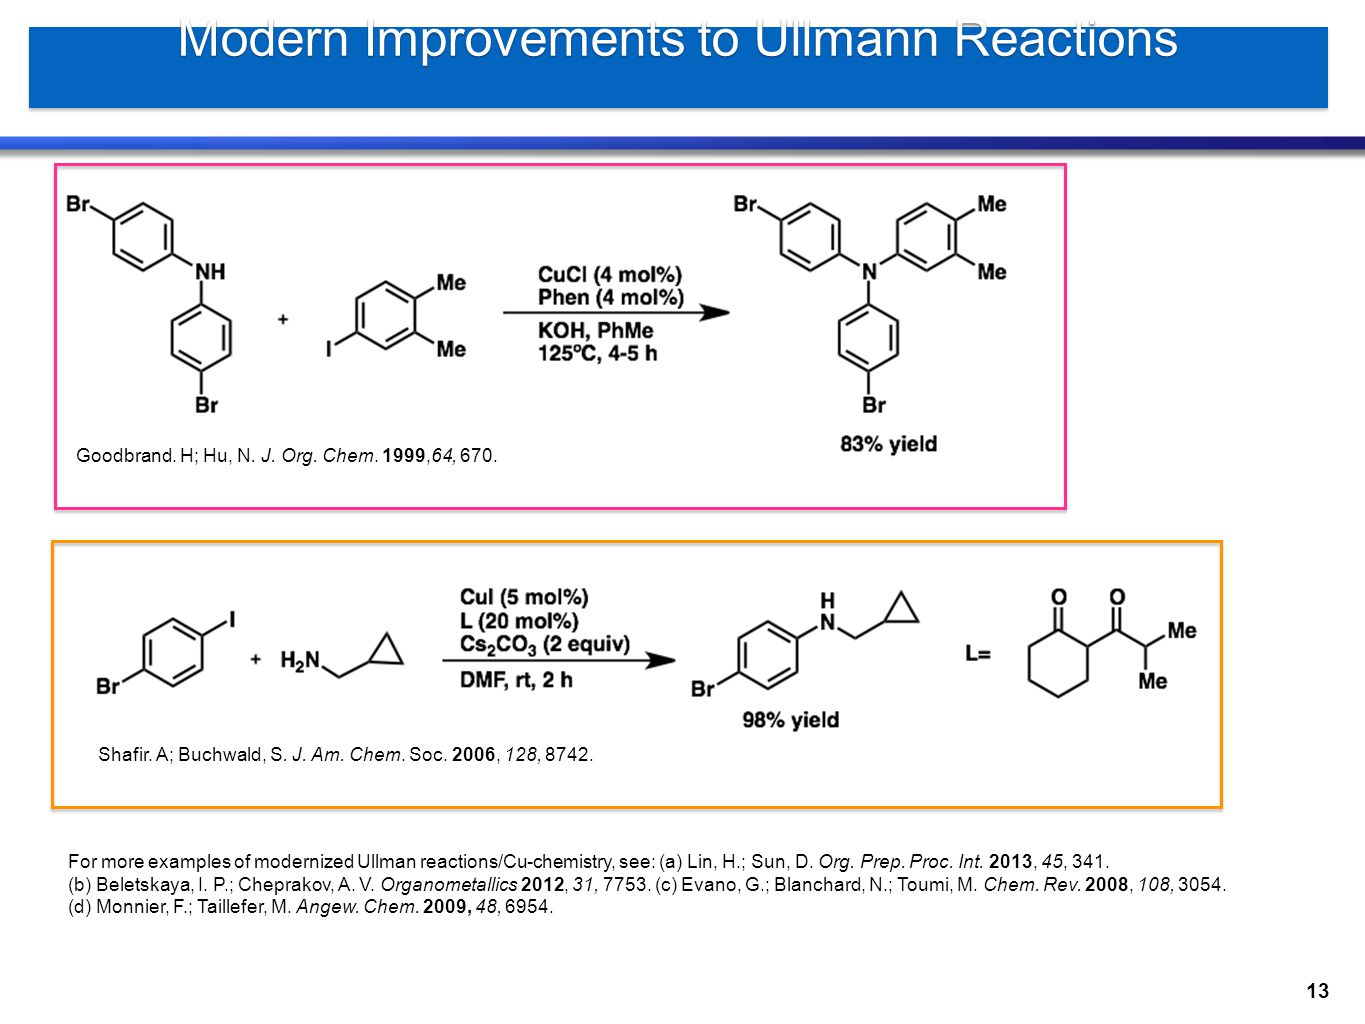 Modern Improvements to Ullmann Reactions